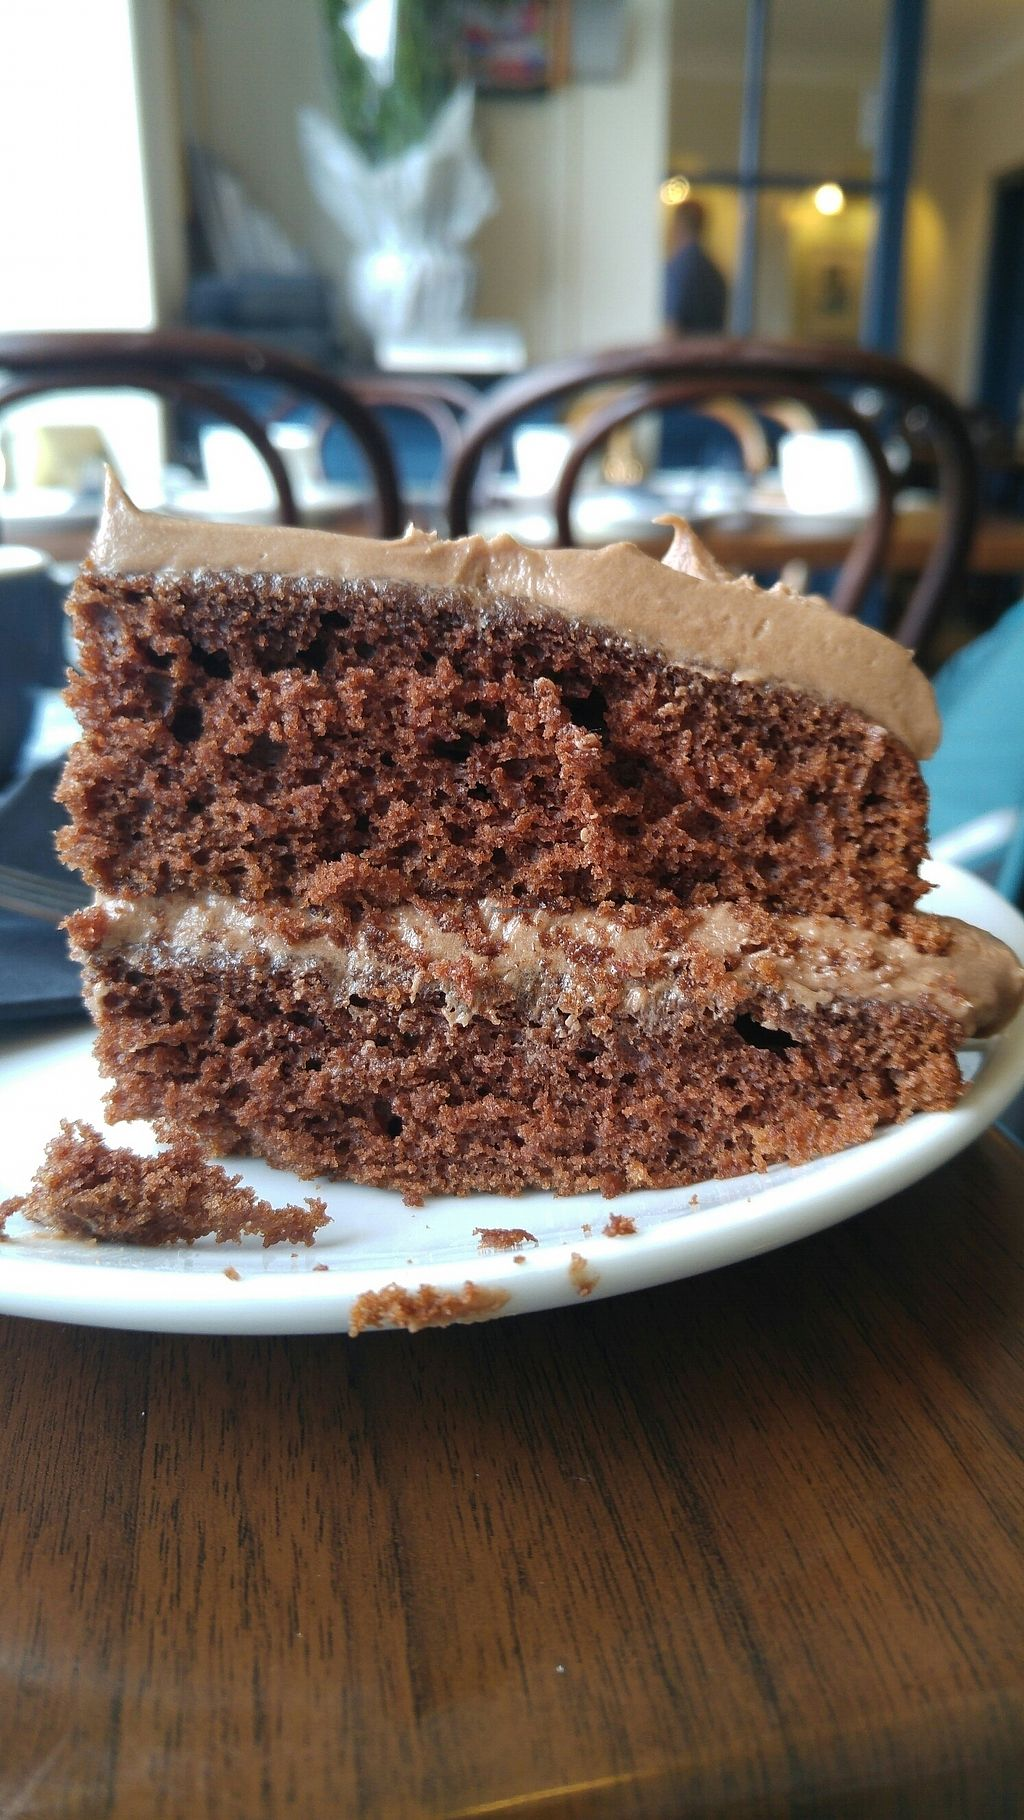 """Photo of Lempicka Cafe and Bistro  by <a href=""""/members/profile/JohnKnight"""">JohnKnight</a> <br/>Chocolate layer cake <br/> July 30, 2017  - <a href='/contact/abuse/image/97486/286787'>Report</a>"""